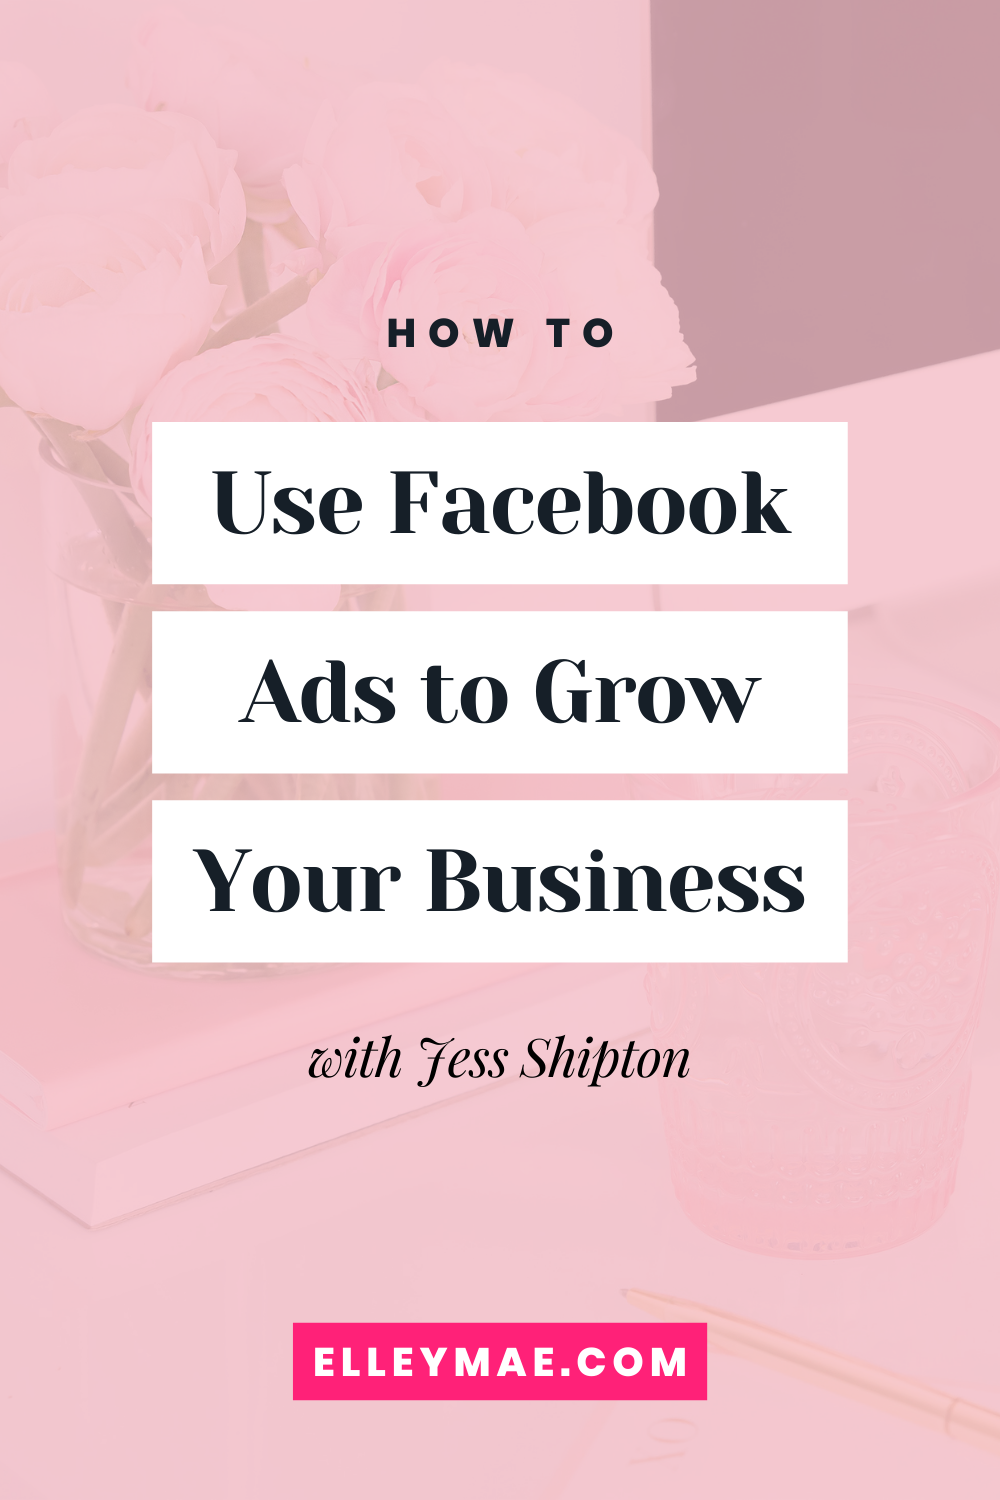 061. Using Facebook Ads to Generate More Sales with Jess Shipton